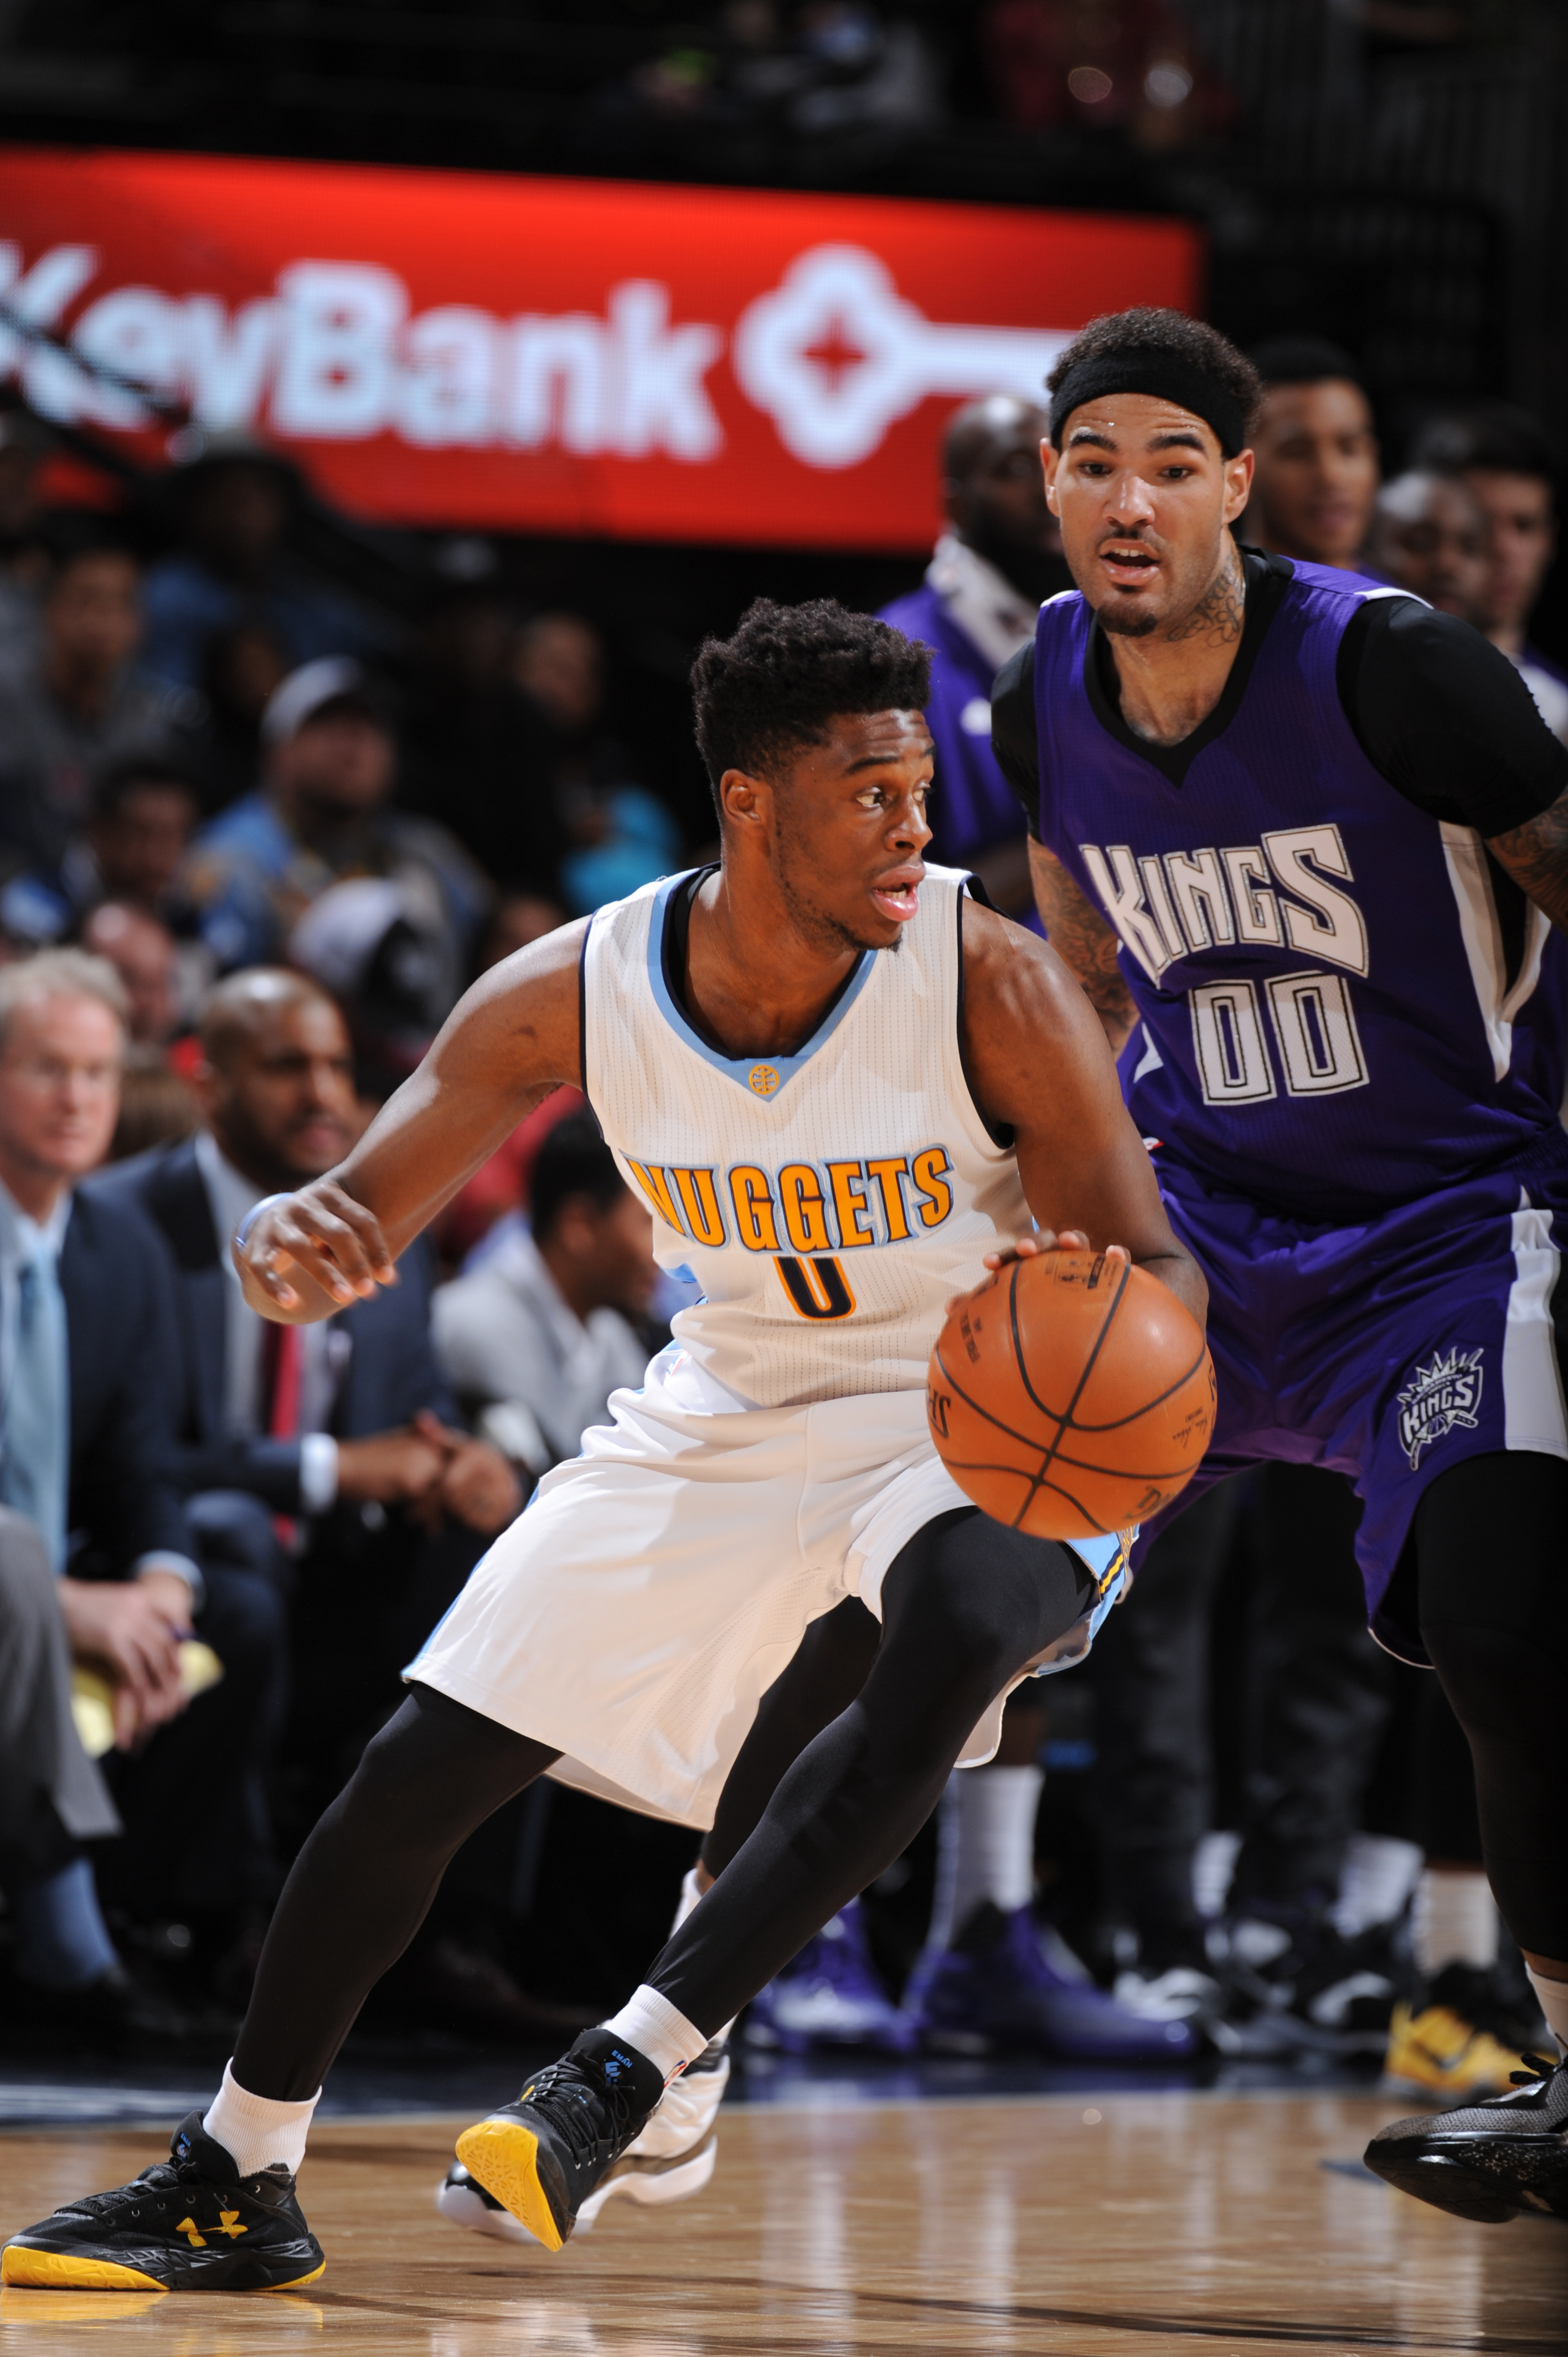 DENVER, CO  - APRIL 2: Emmanuel Mudiay #0 of the Denver Nuggets drives to the basket against the Sacramento Kings during the game on April 2, 2016 at Pepsi Center in Denver, Colorado. (Photo by Garrett Ellwood/NBAE via Getty Images)